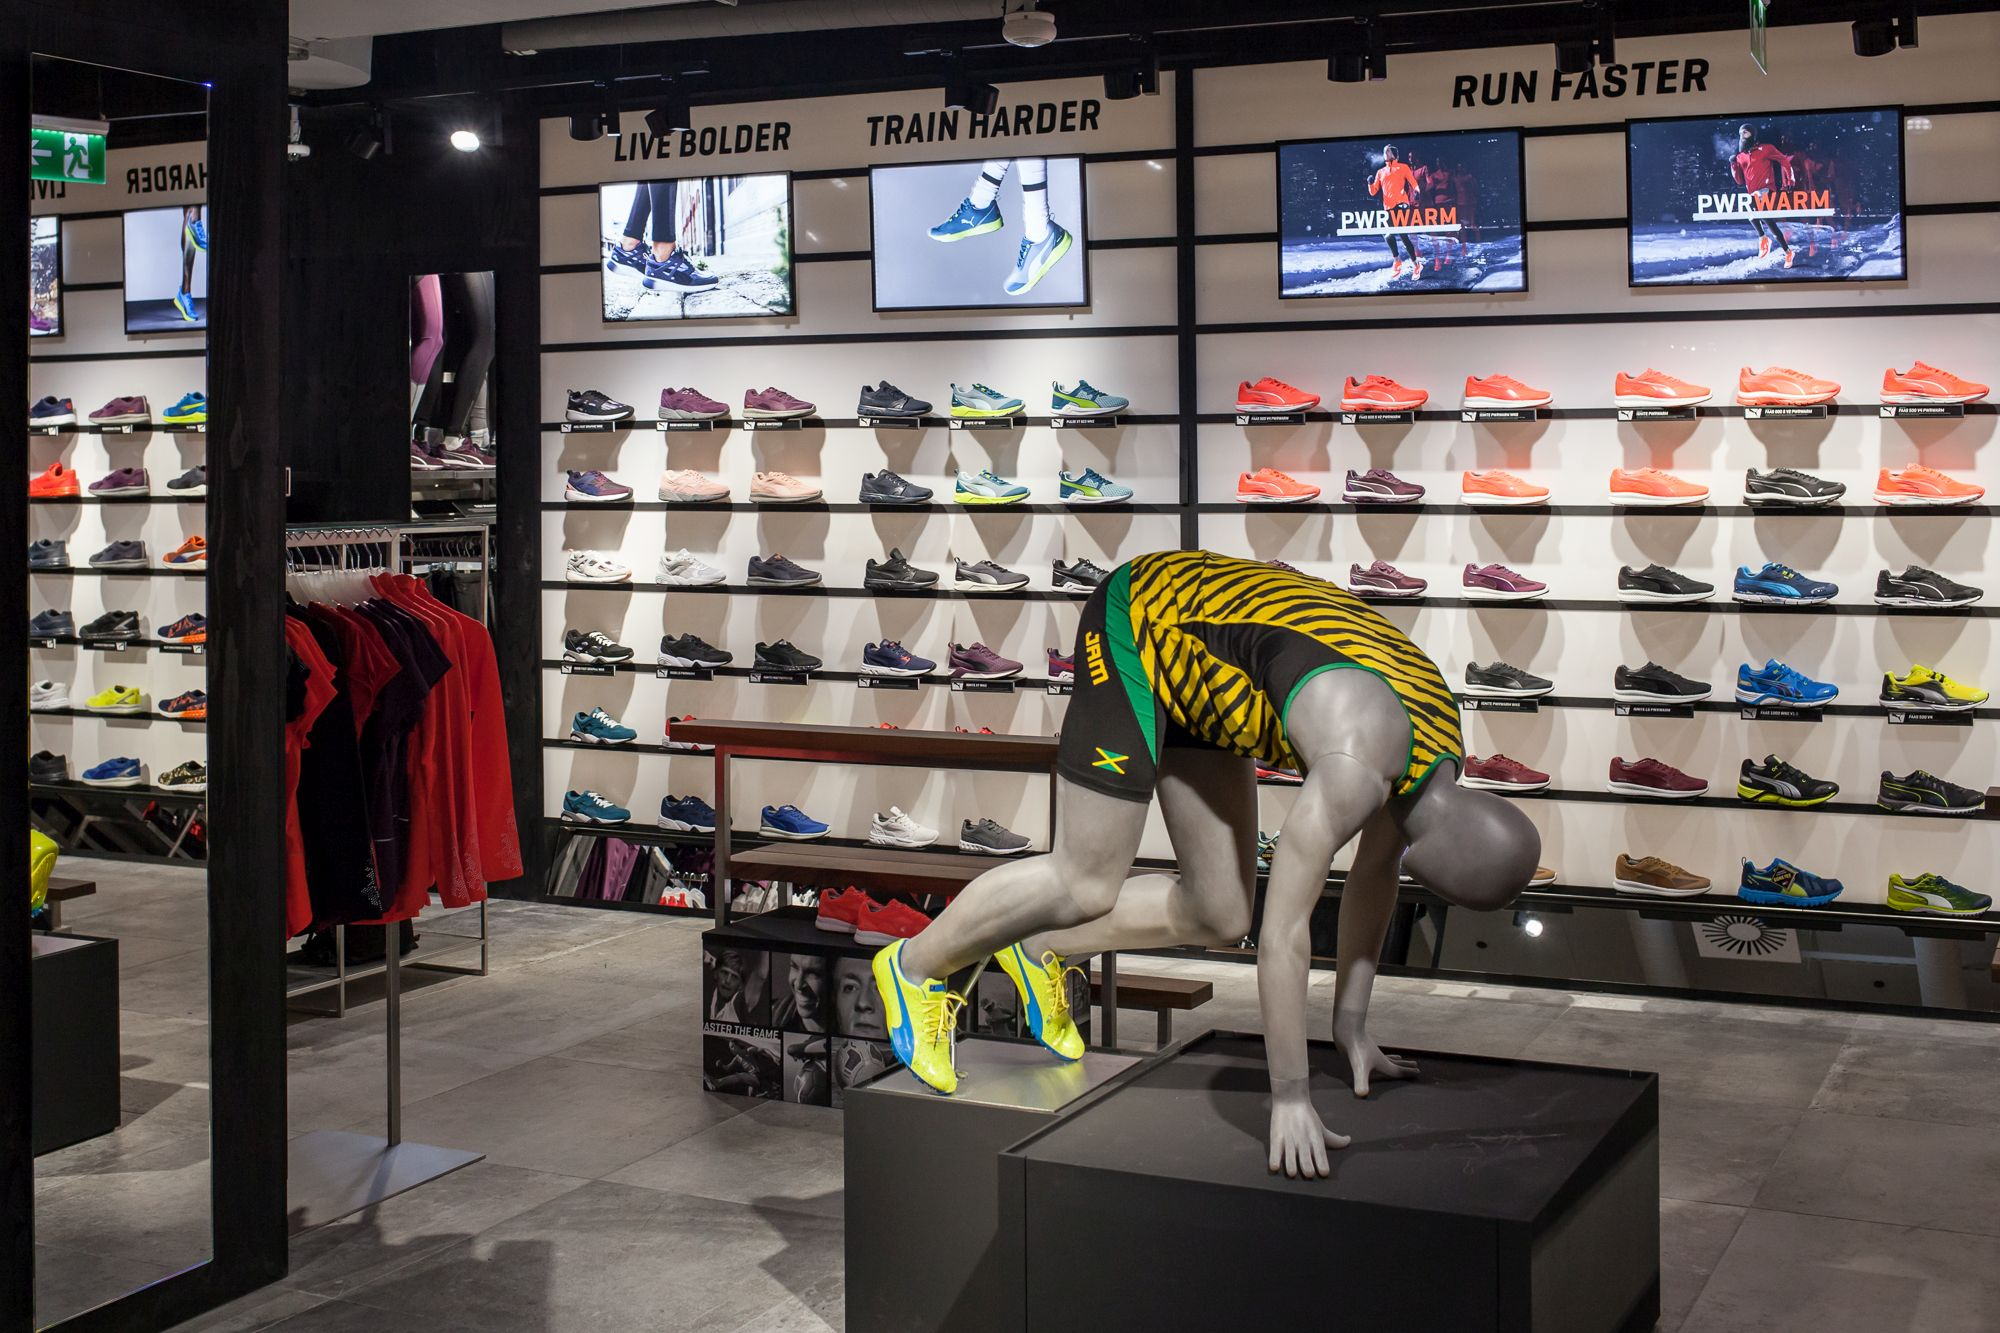 grande vente 3463b b969e PUMA Store in Prague reopens with new Forever Faster store ...